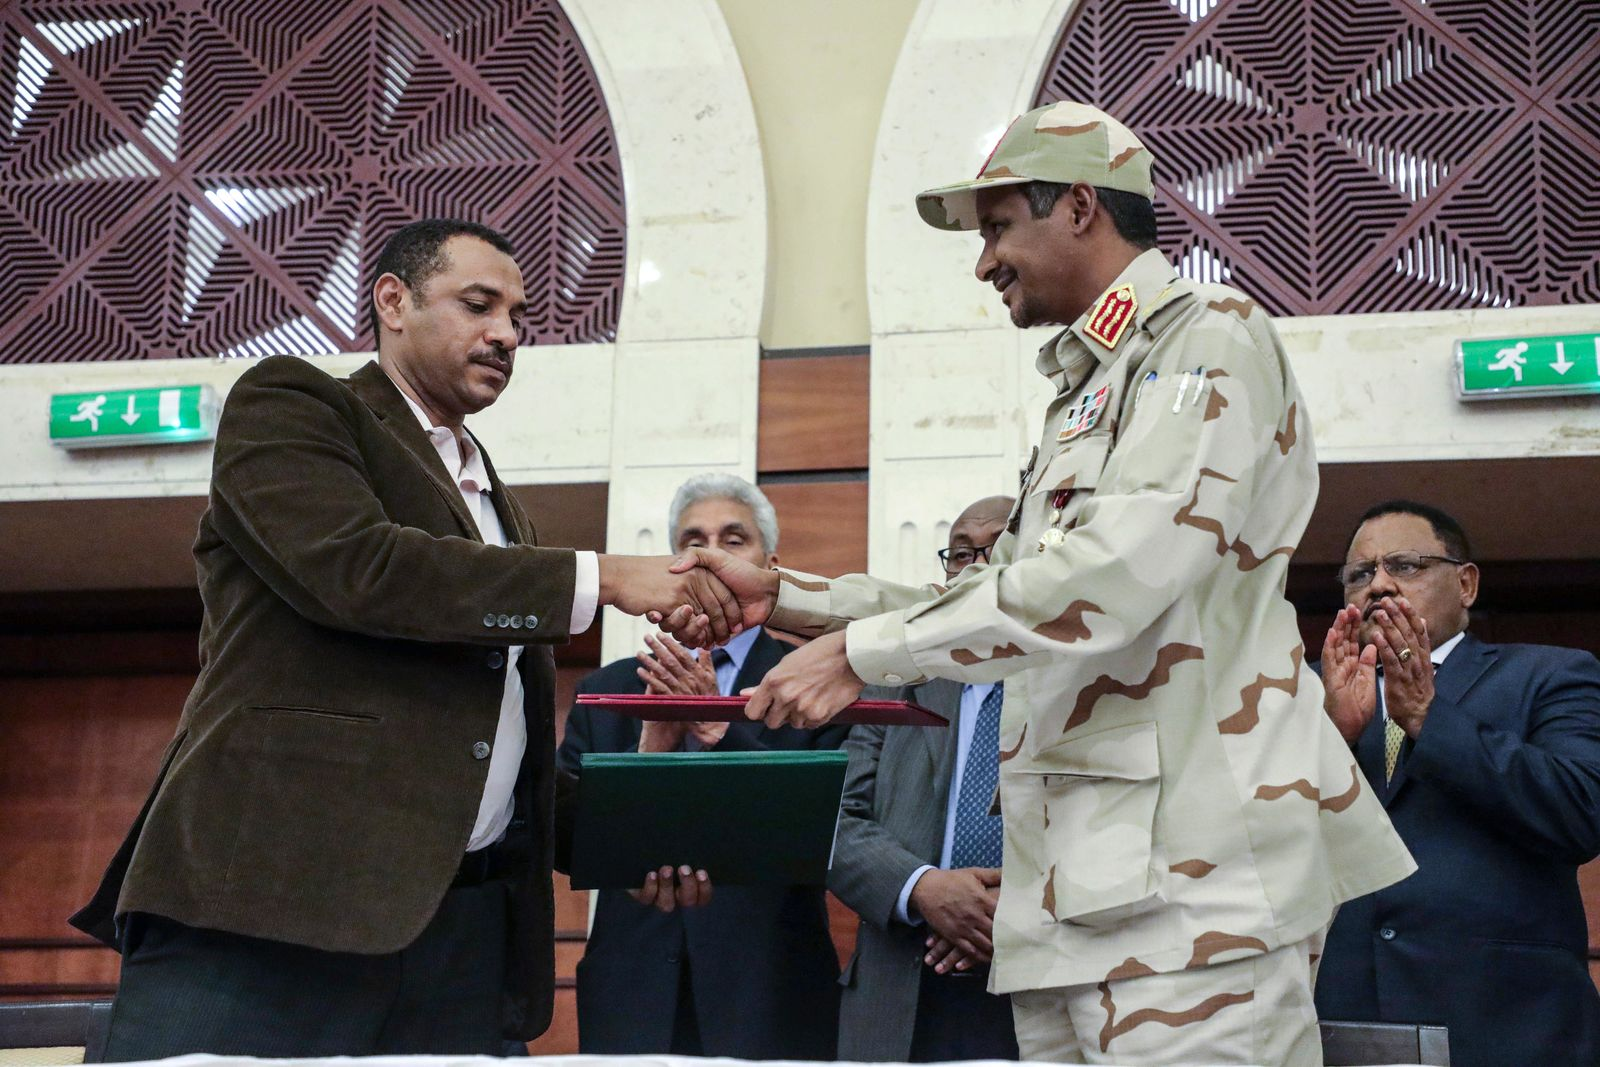 Gen. Mohammed Hamdan Dagalo, right, and Sudan's pro-democracy movement leader Ahmad al-Rabiah shake hands after signing a power sharing document in Khartoum, Sudan, Wednesday, July 17, 2019.{ } (AP Photo/Mahmoud Hjaj)